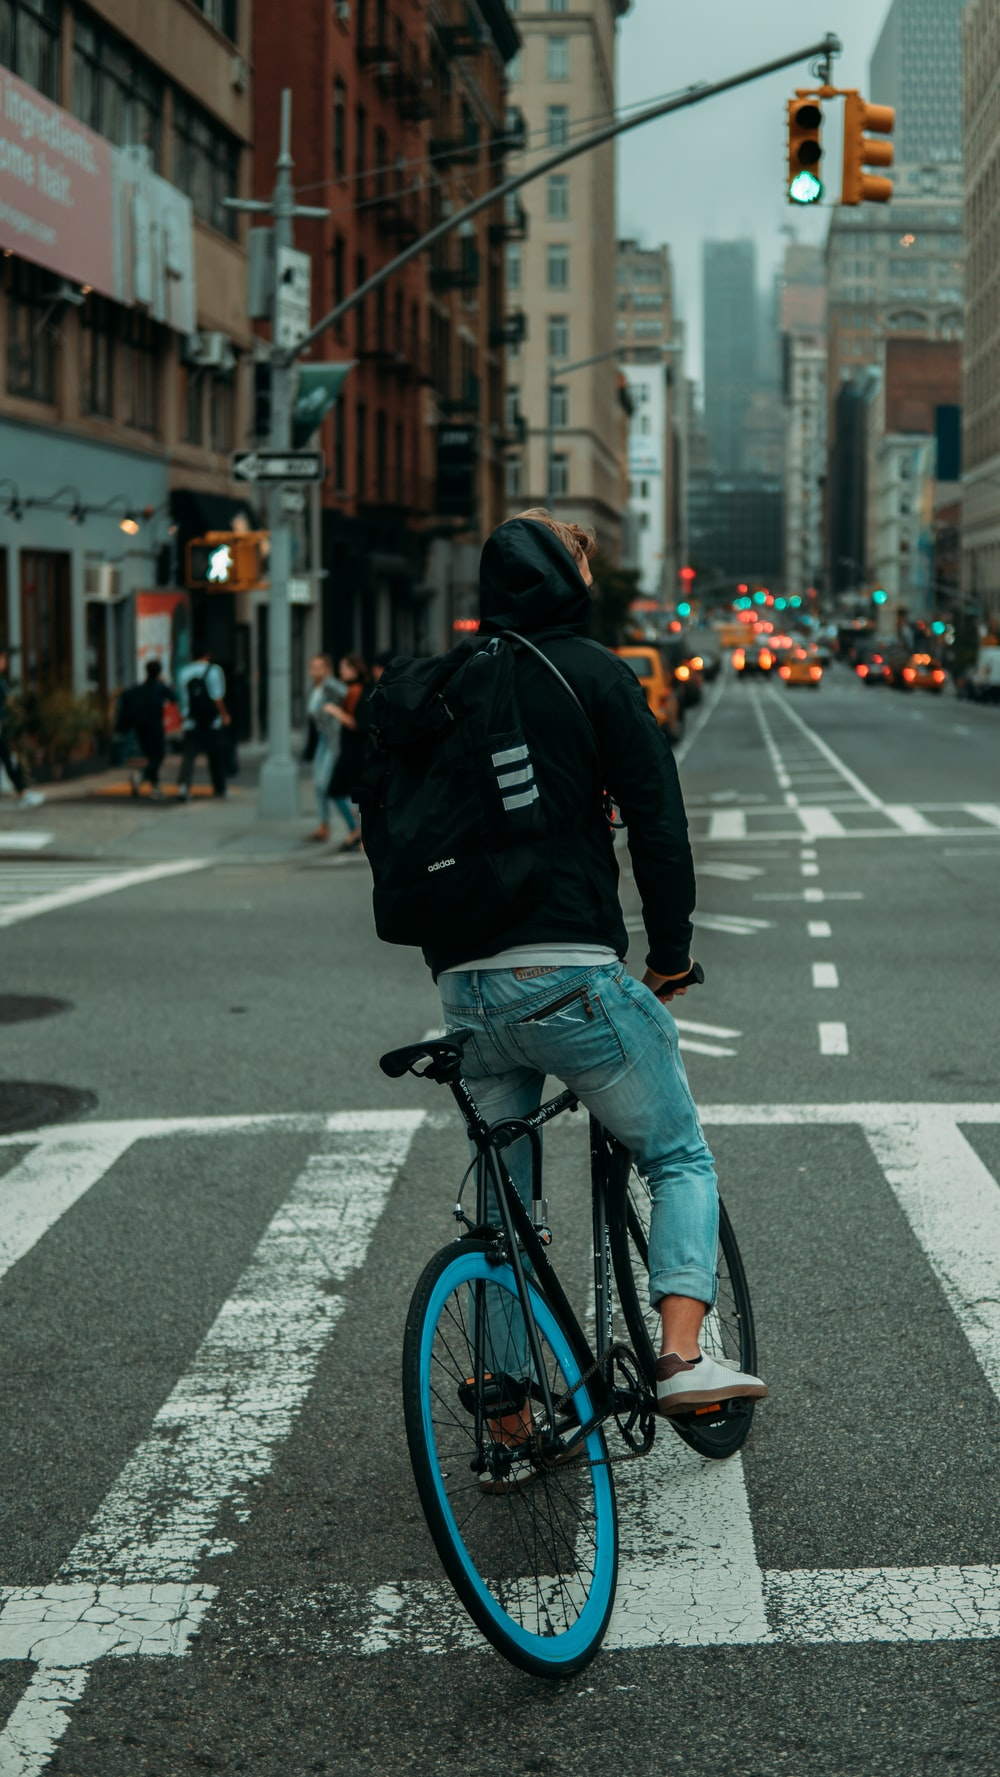 man in black jacket and blue denim jeans riding on bicycle on road during daytime